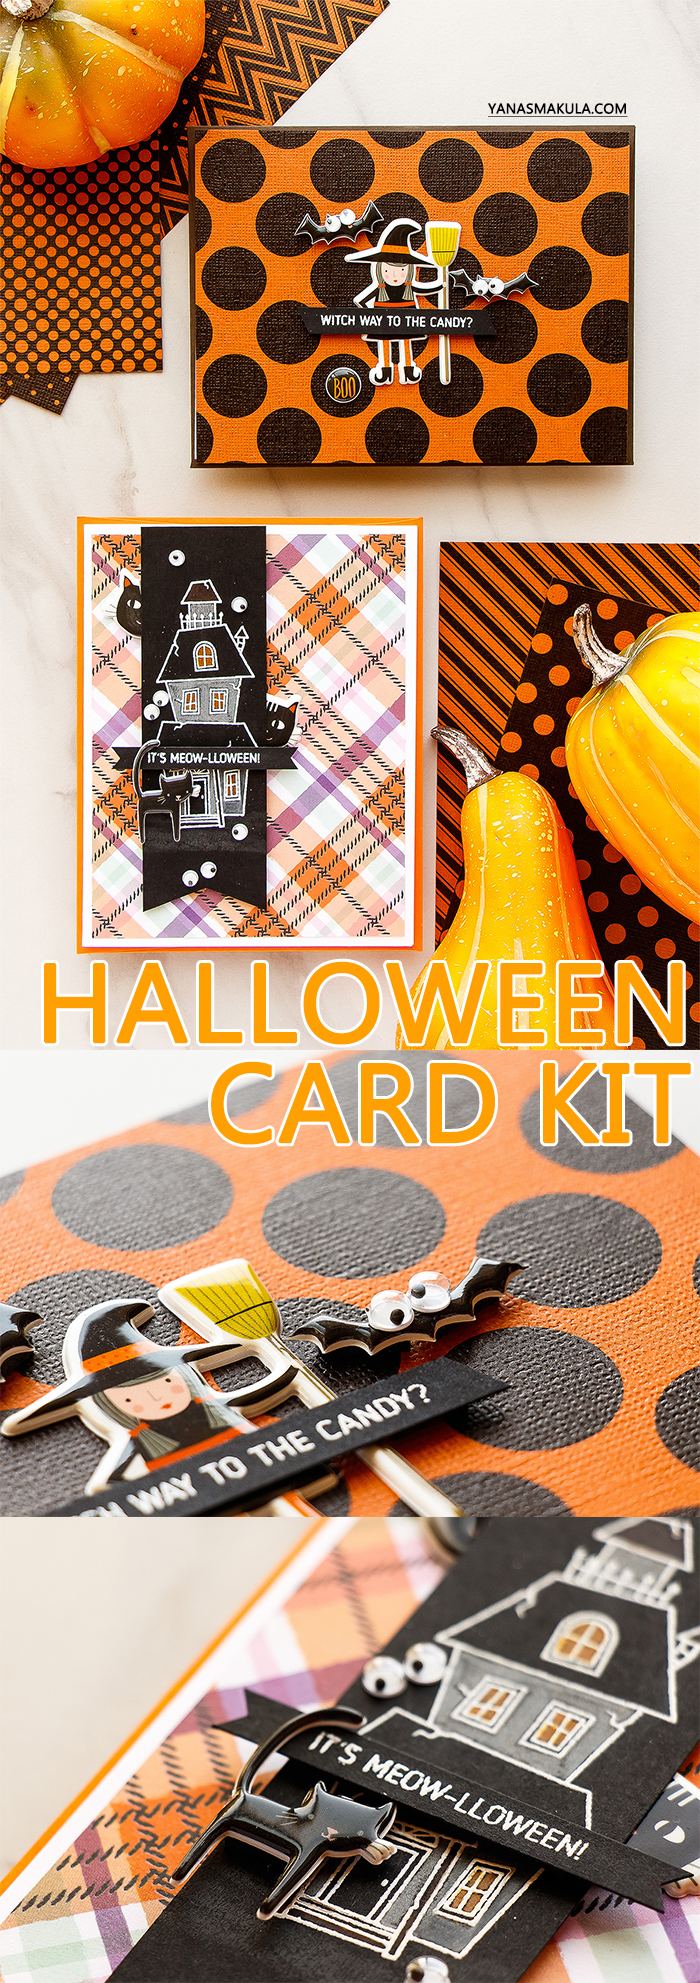 Simon Says Stamp | Limited Edition Halloween Card Kit. Silly and Spooky Halloween cards by Yana Smakula